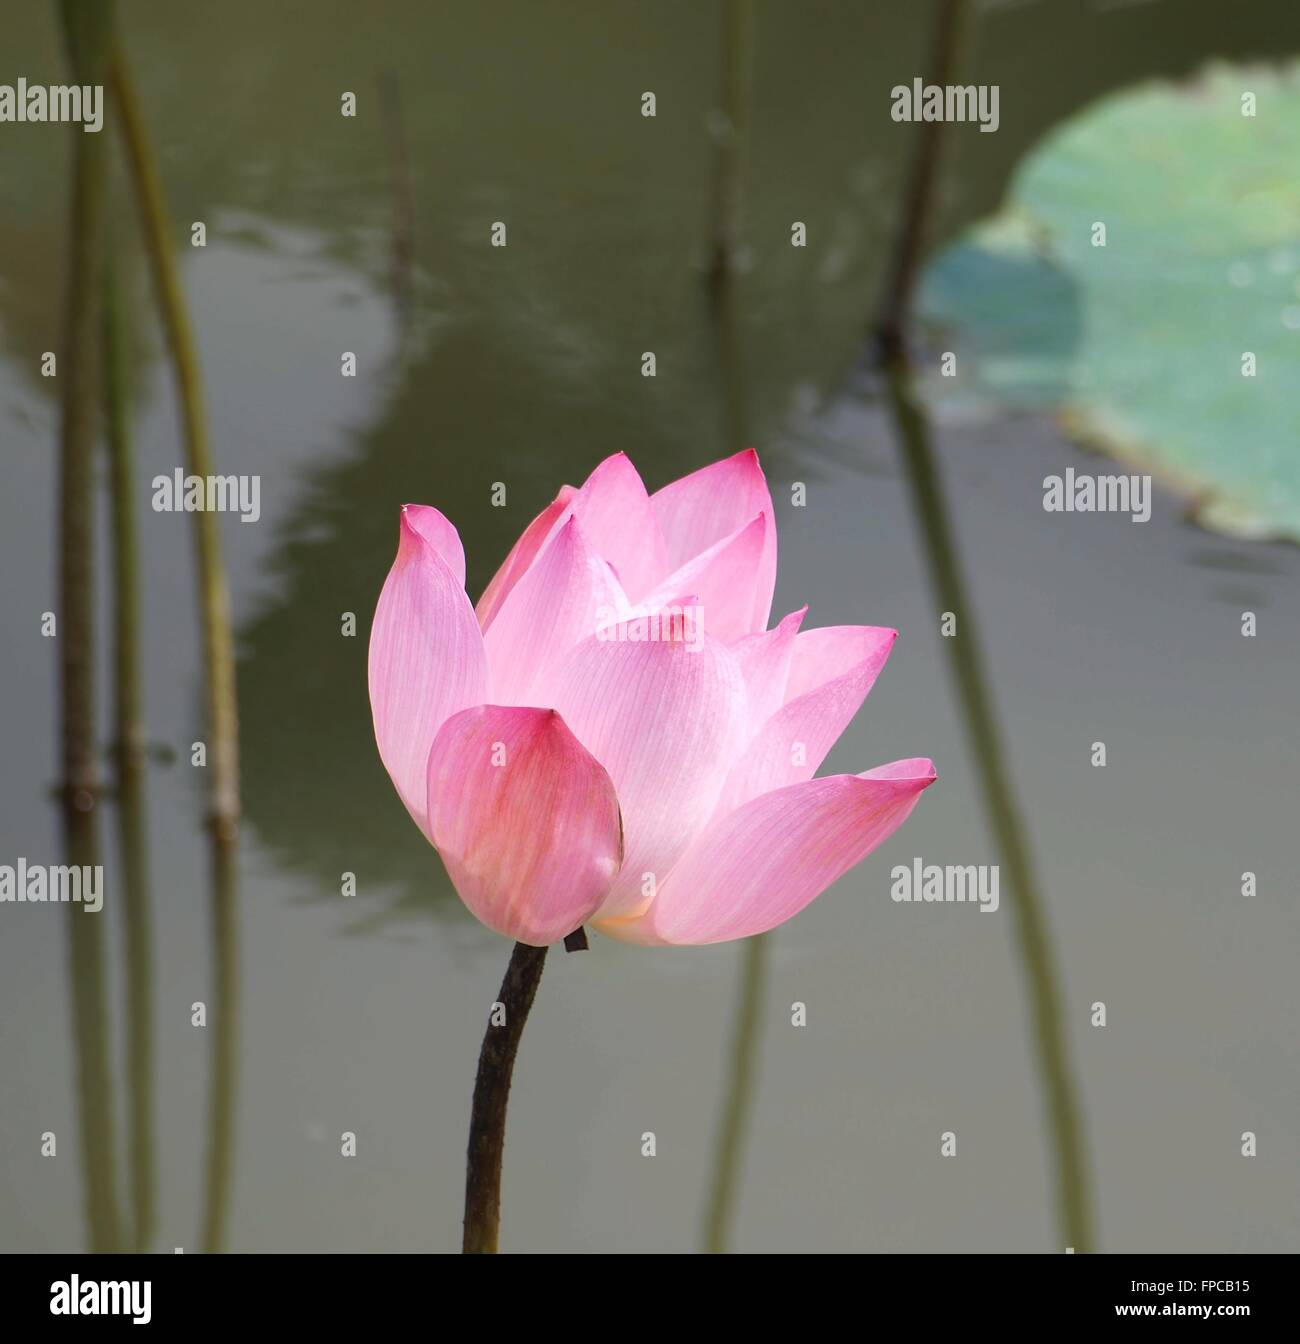 The Beautiful Lotus Flower Is A Symbol For Buddhism In Asia Stock